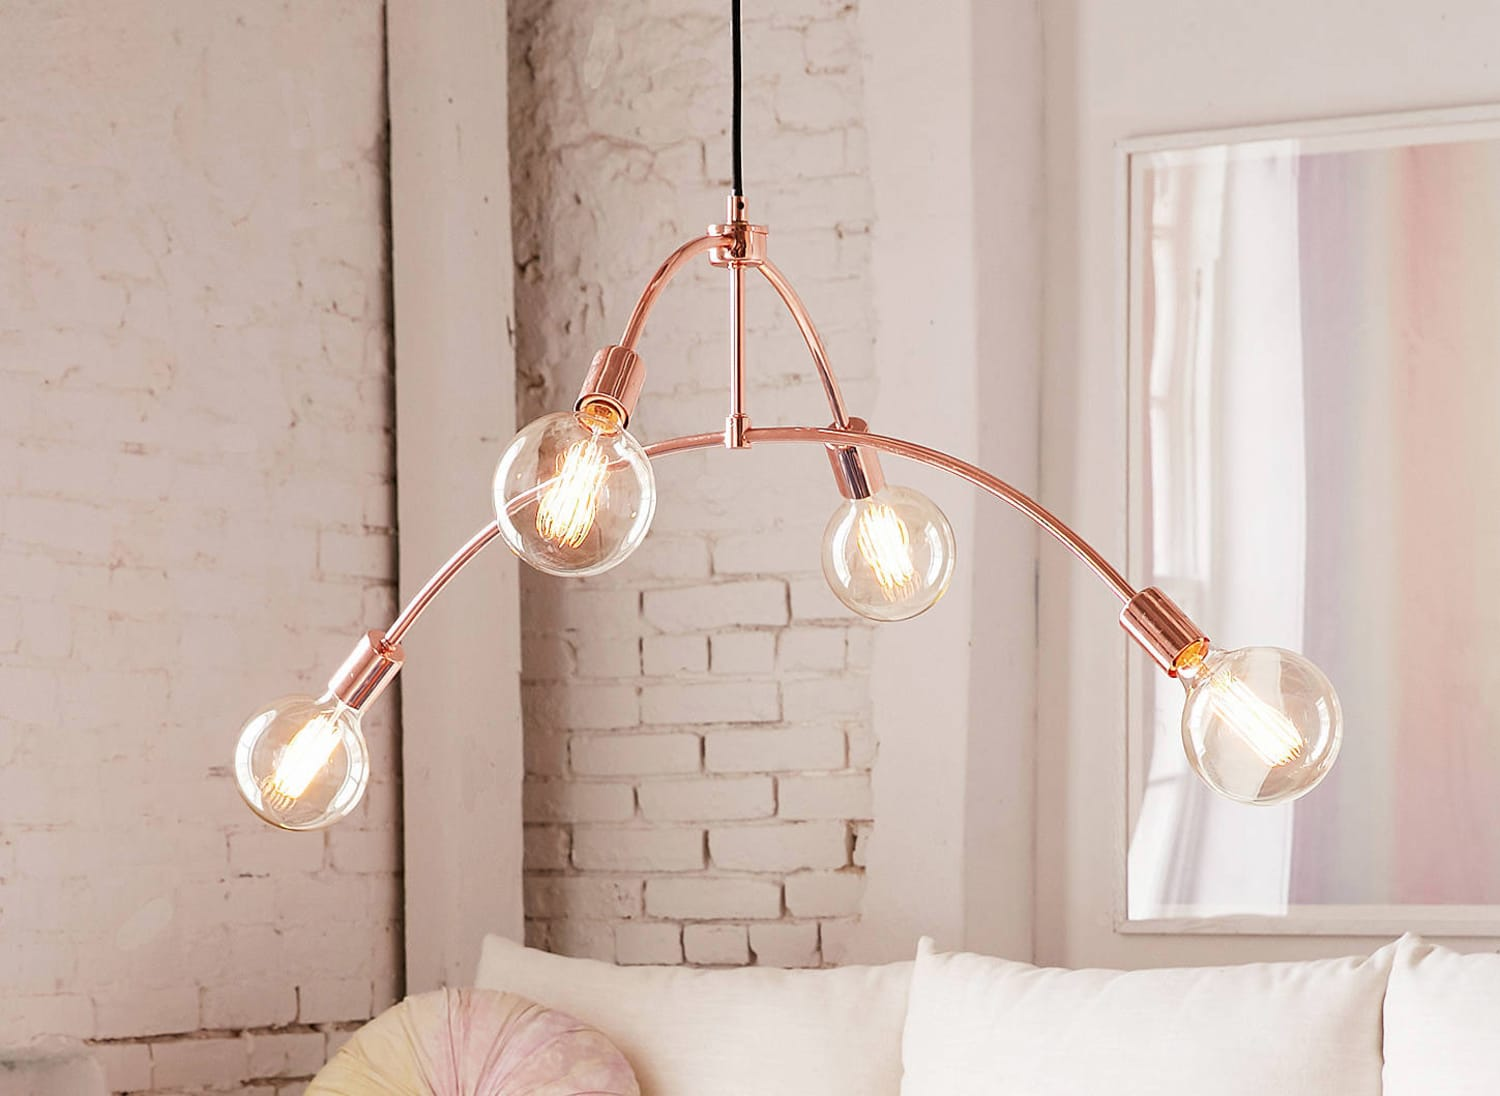 Yes, You Can Buy a Really Great, Modern Chandelier for Under $200